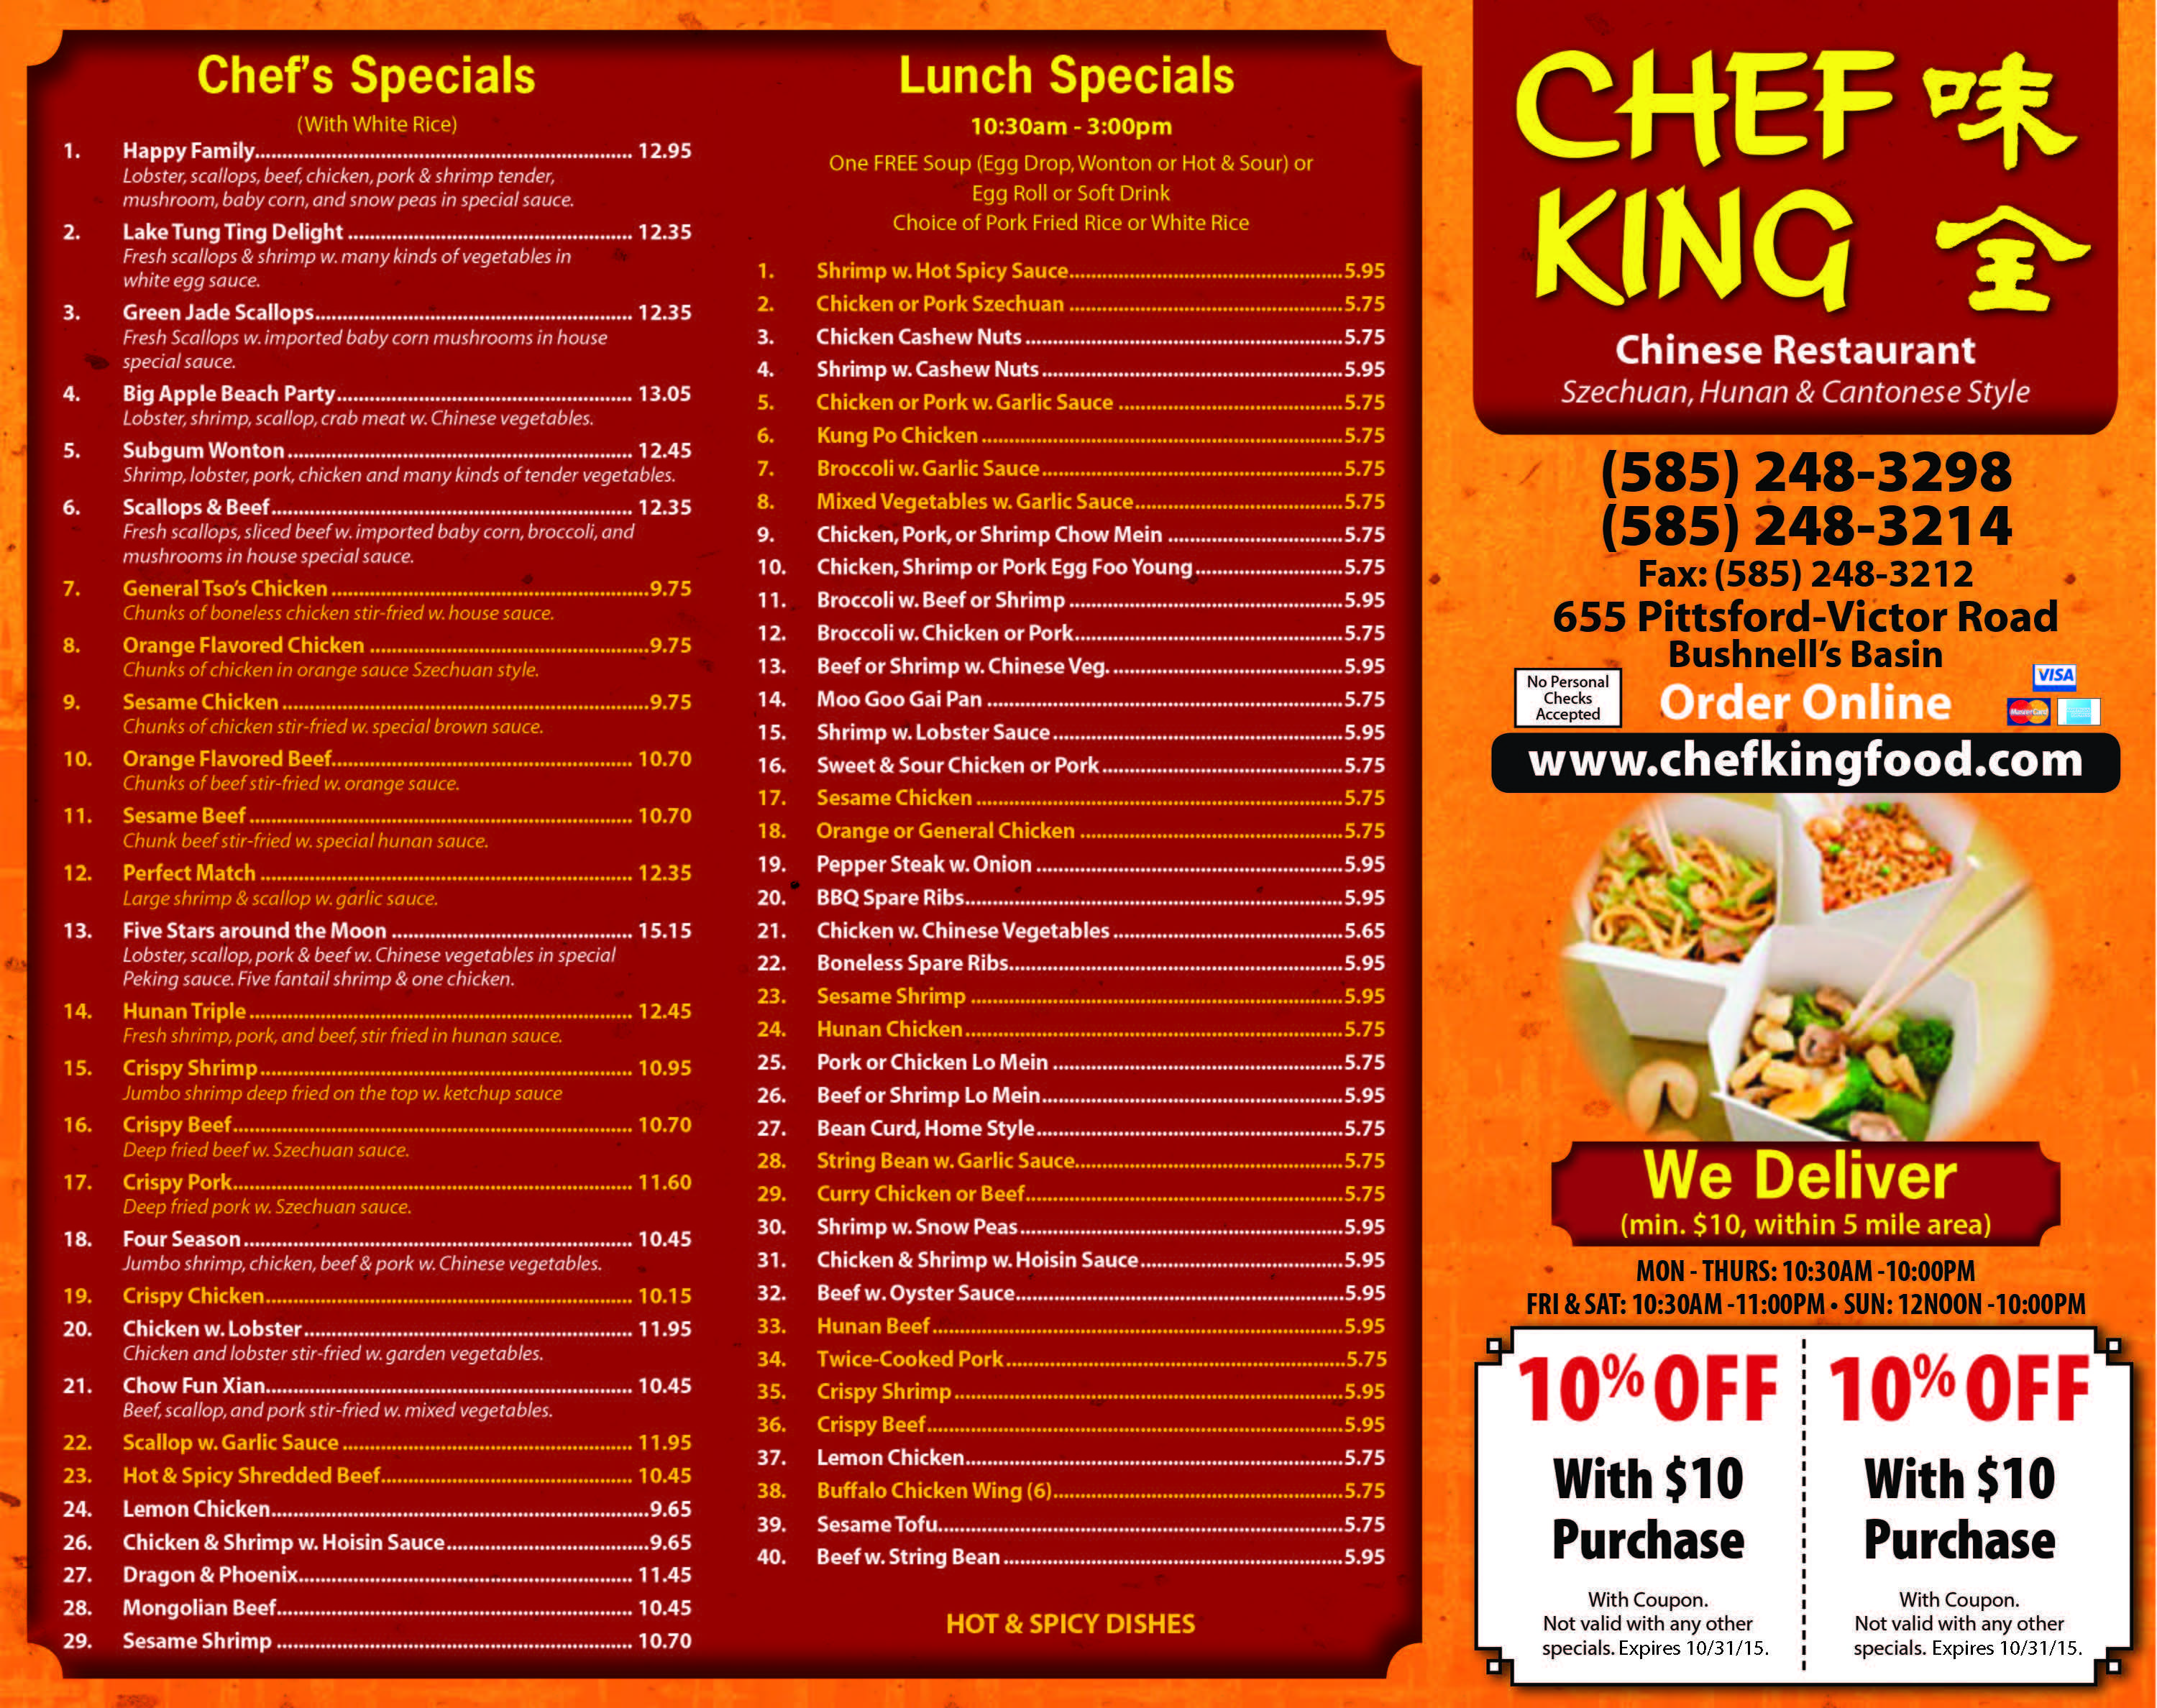 The Chef King Chinese Restaurant Offers 10 Off Savings On Menu Items Http Chefkinggreece Com Menu Asp Food Coupon Lunch Specials Chef